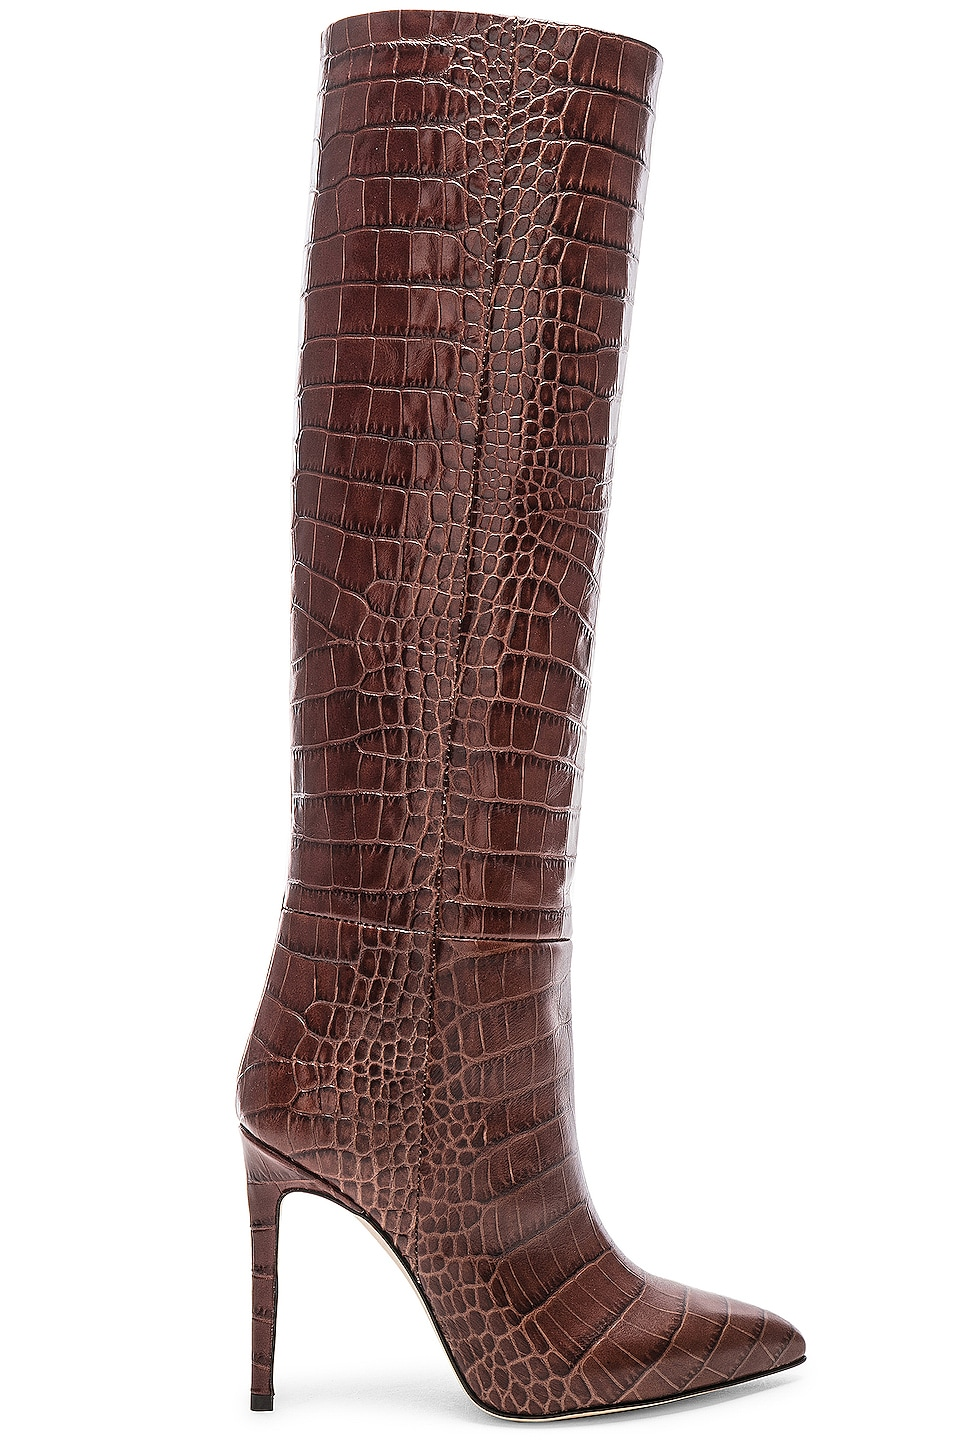 Image 1 of Paris Texas Stiletto Knee High Boot in Brown Croc